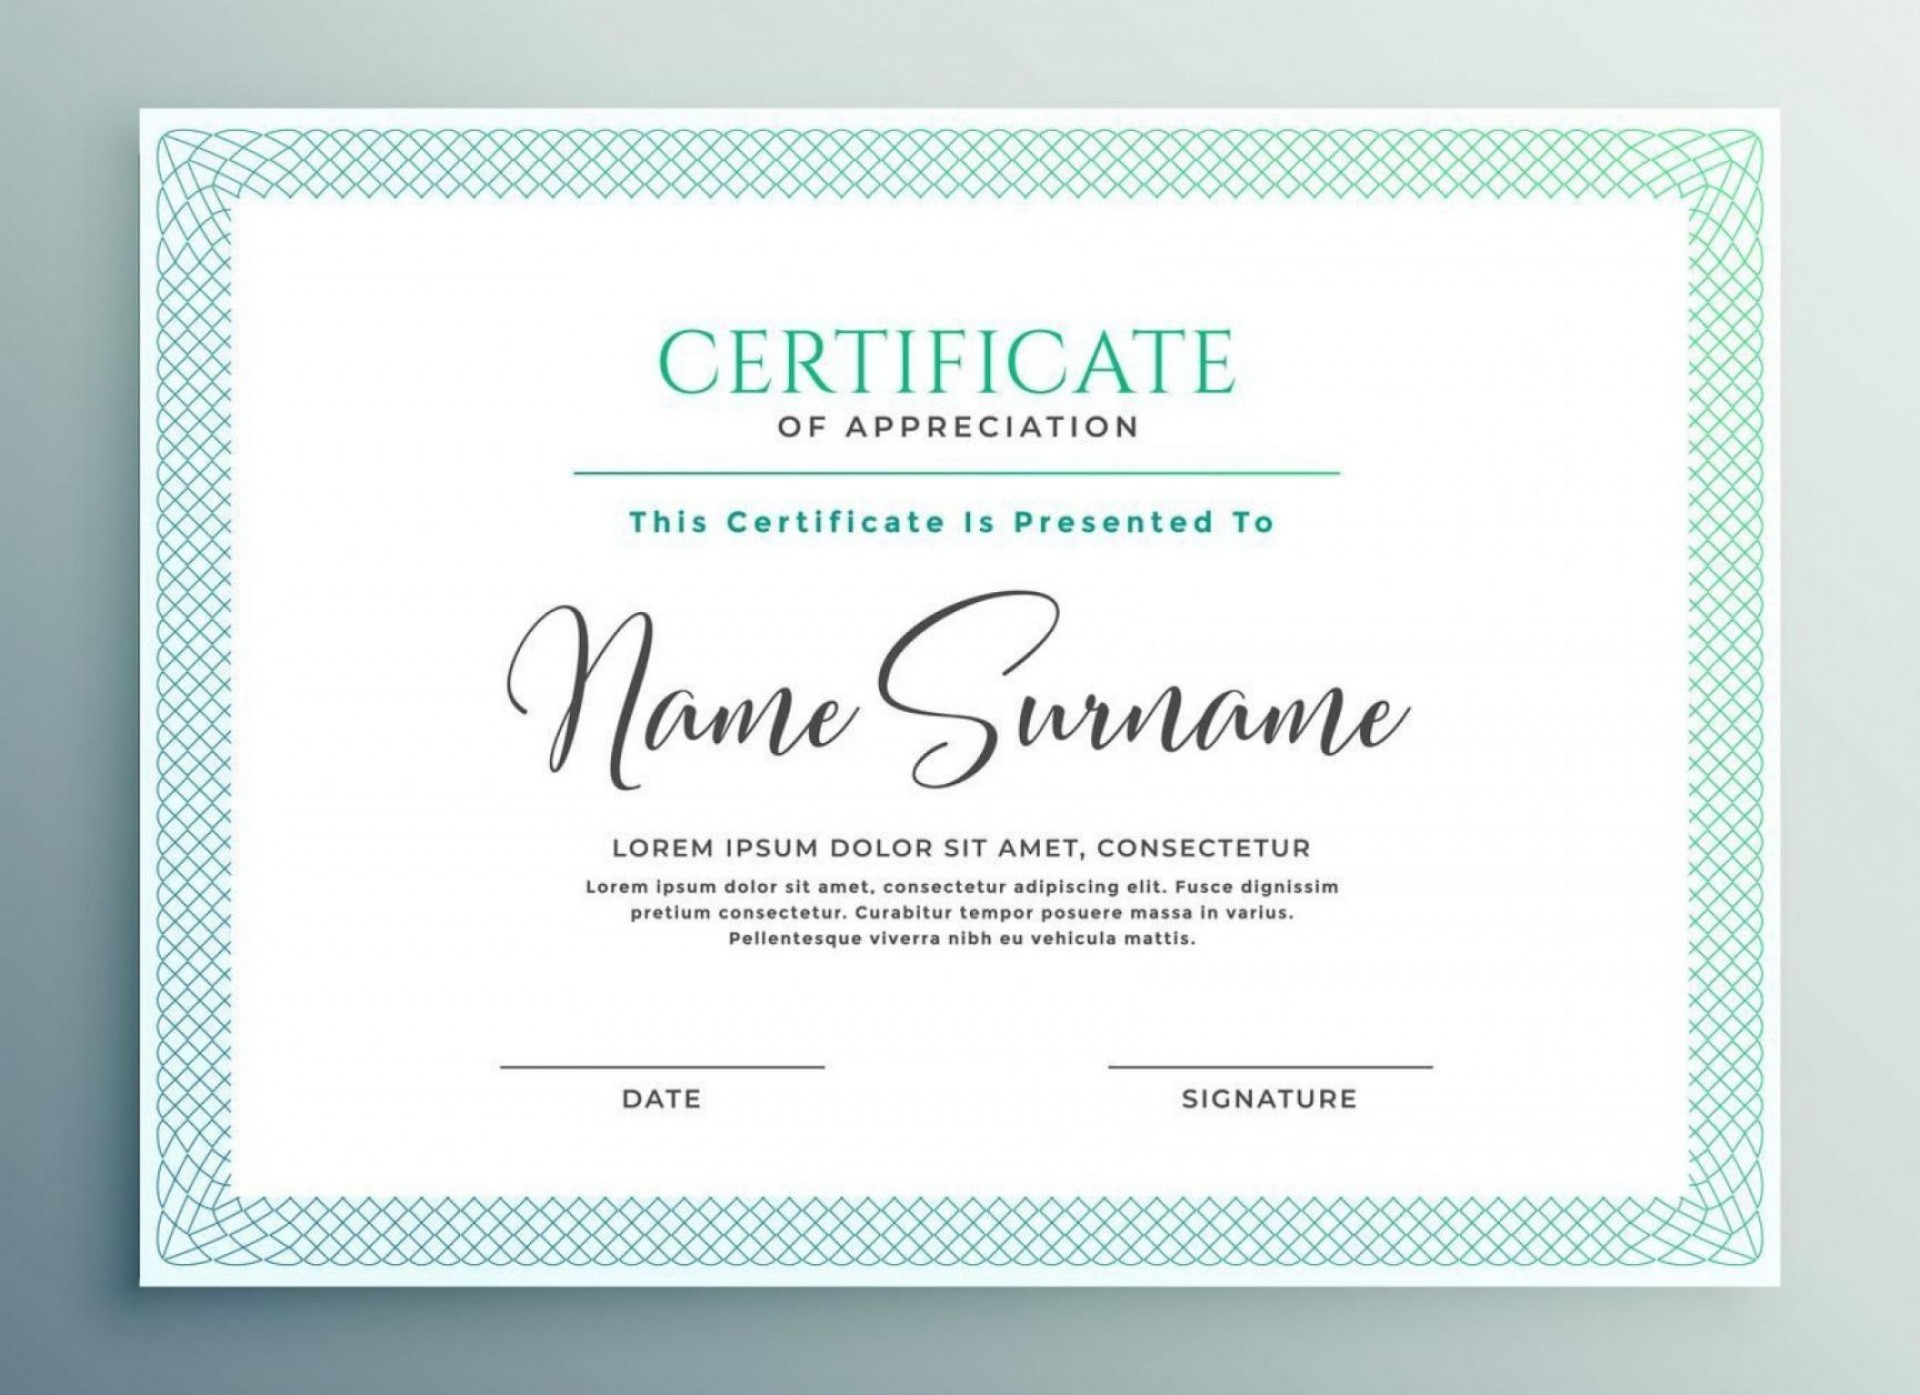 005 Fantastic Free Silent Auction Gift Certificate Template High Resolution 1920